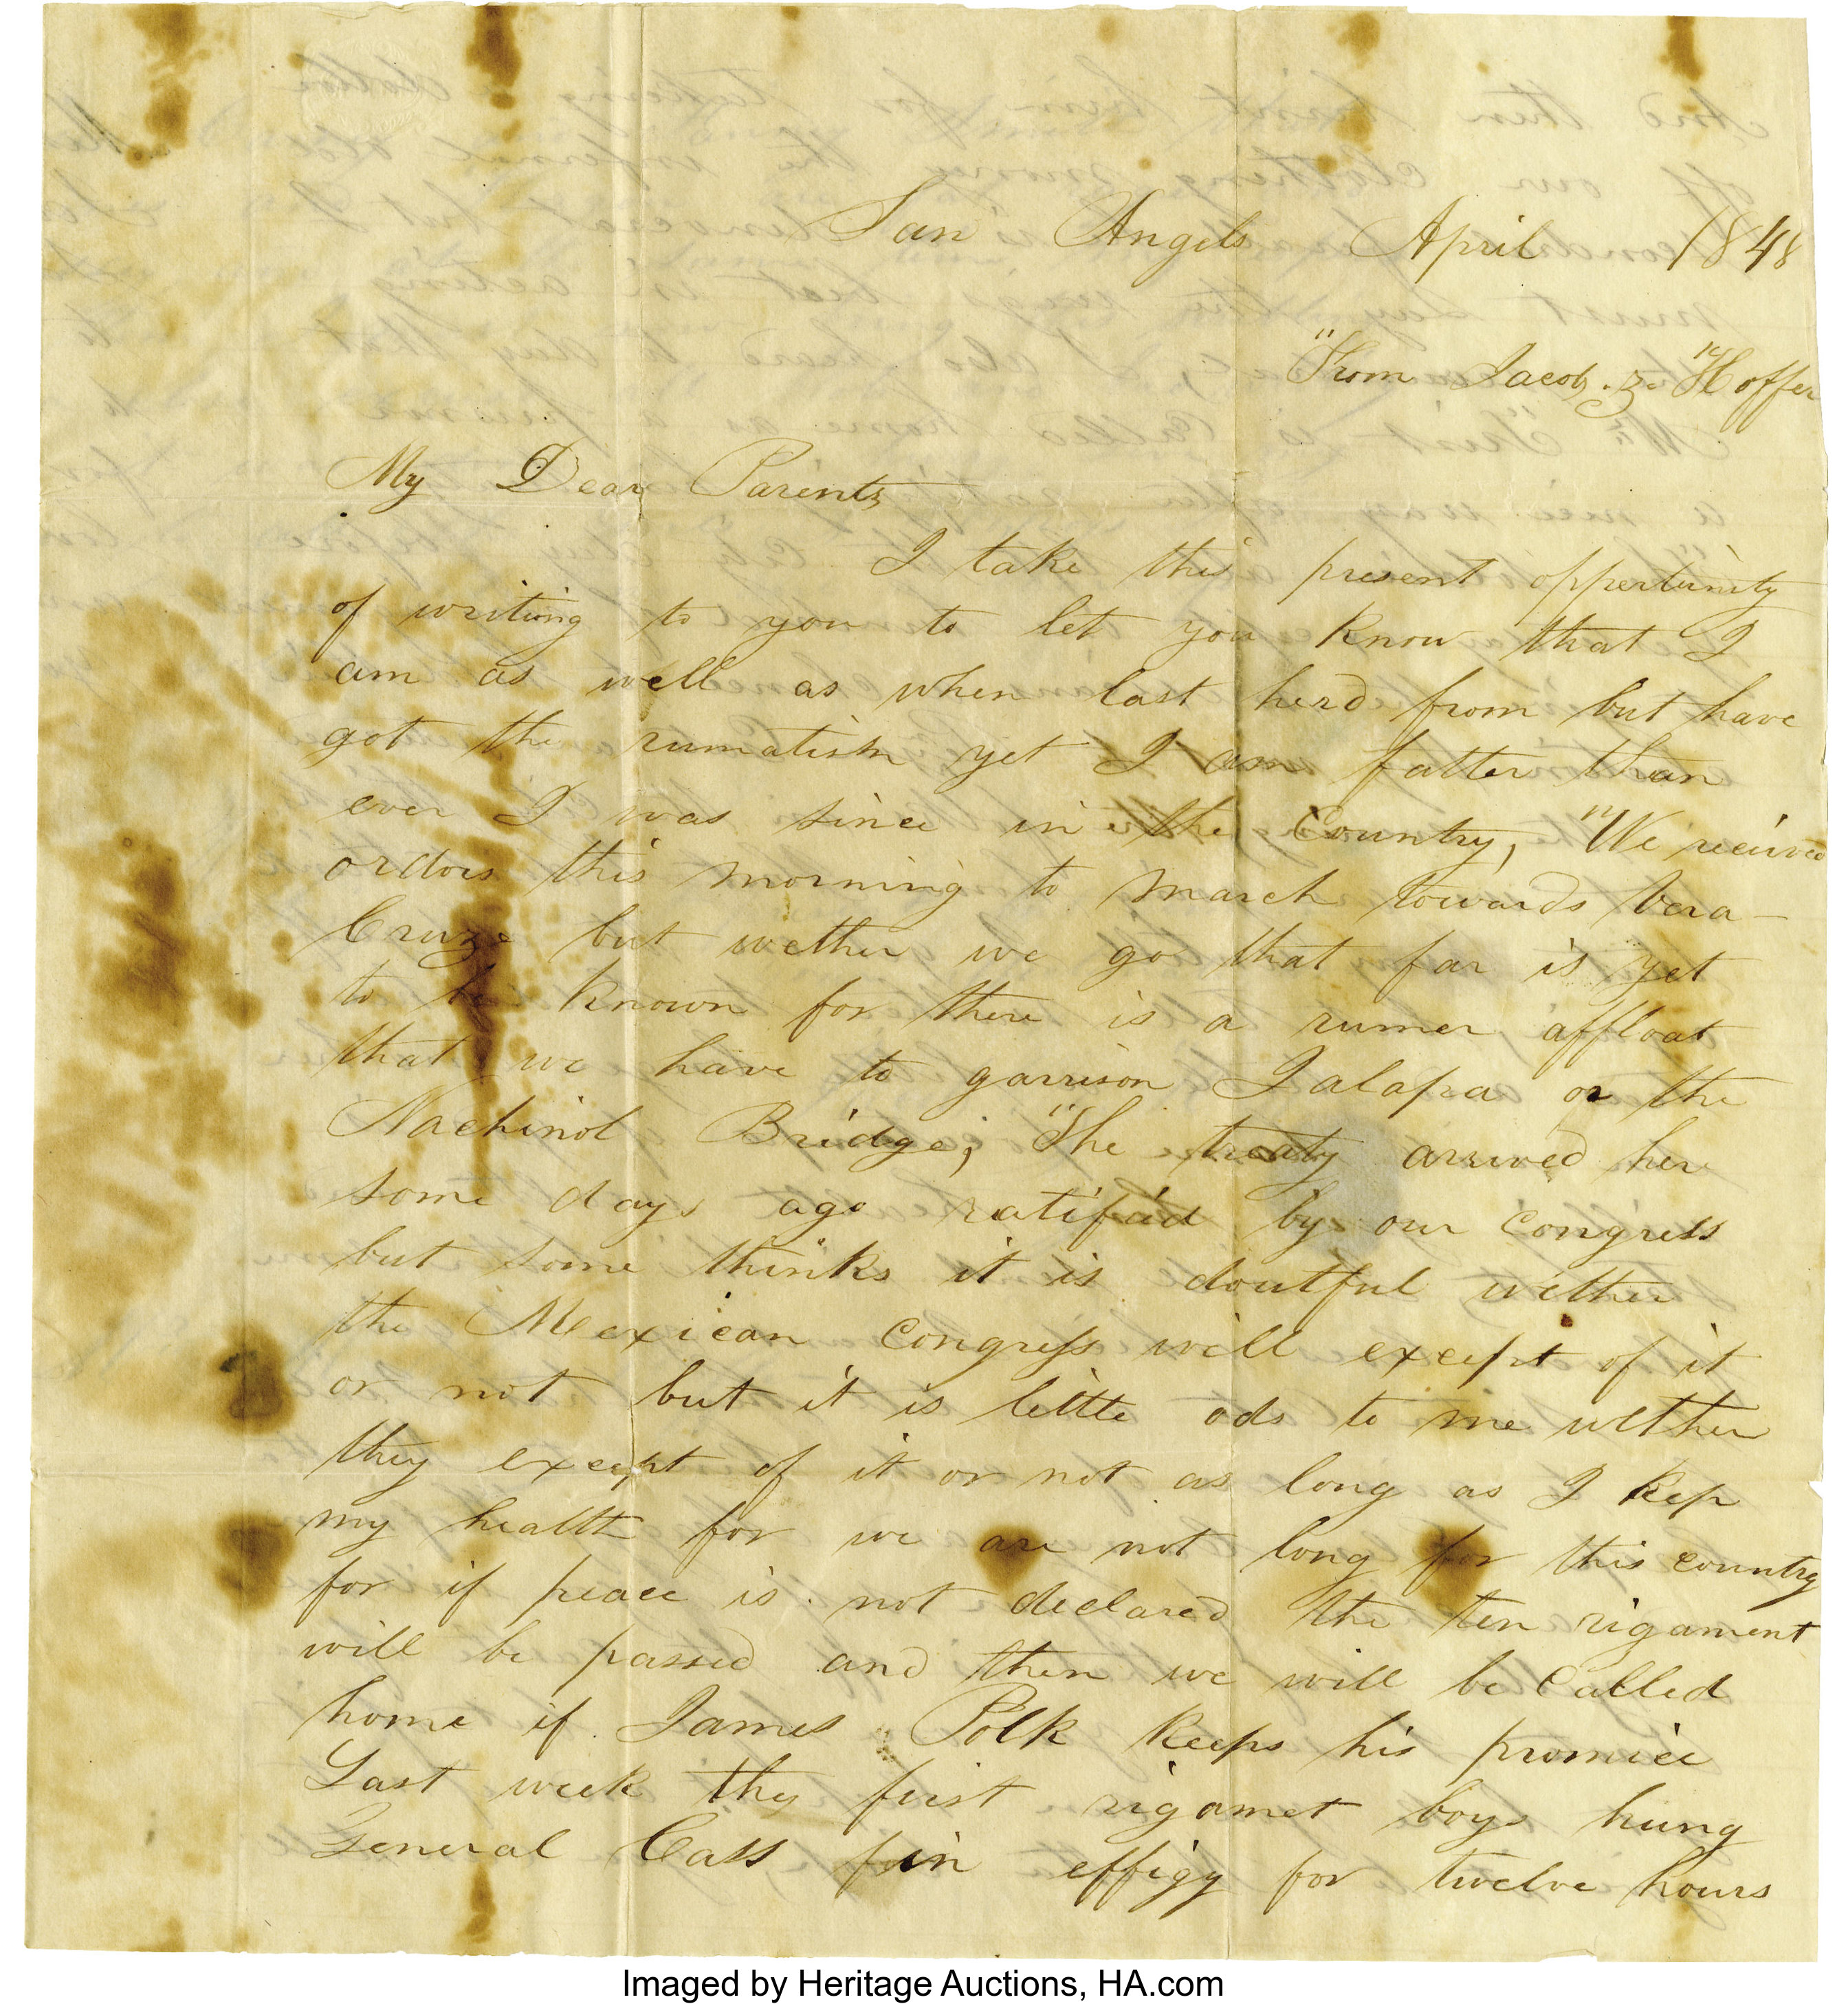 End Of Letter Called from dyn1.heritagestatic.com